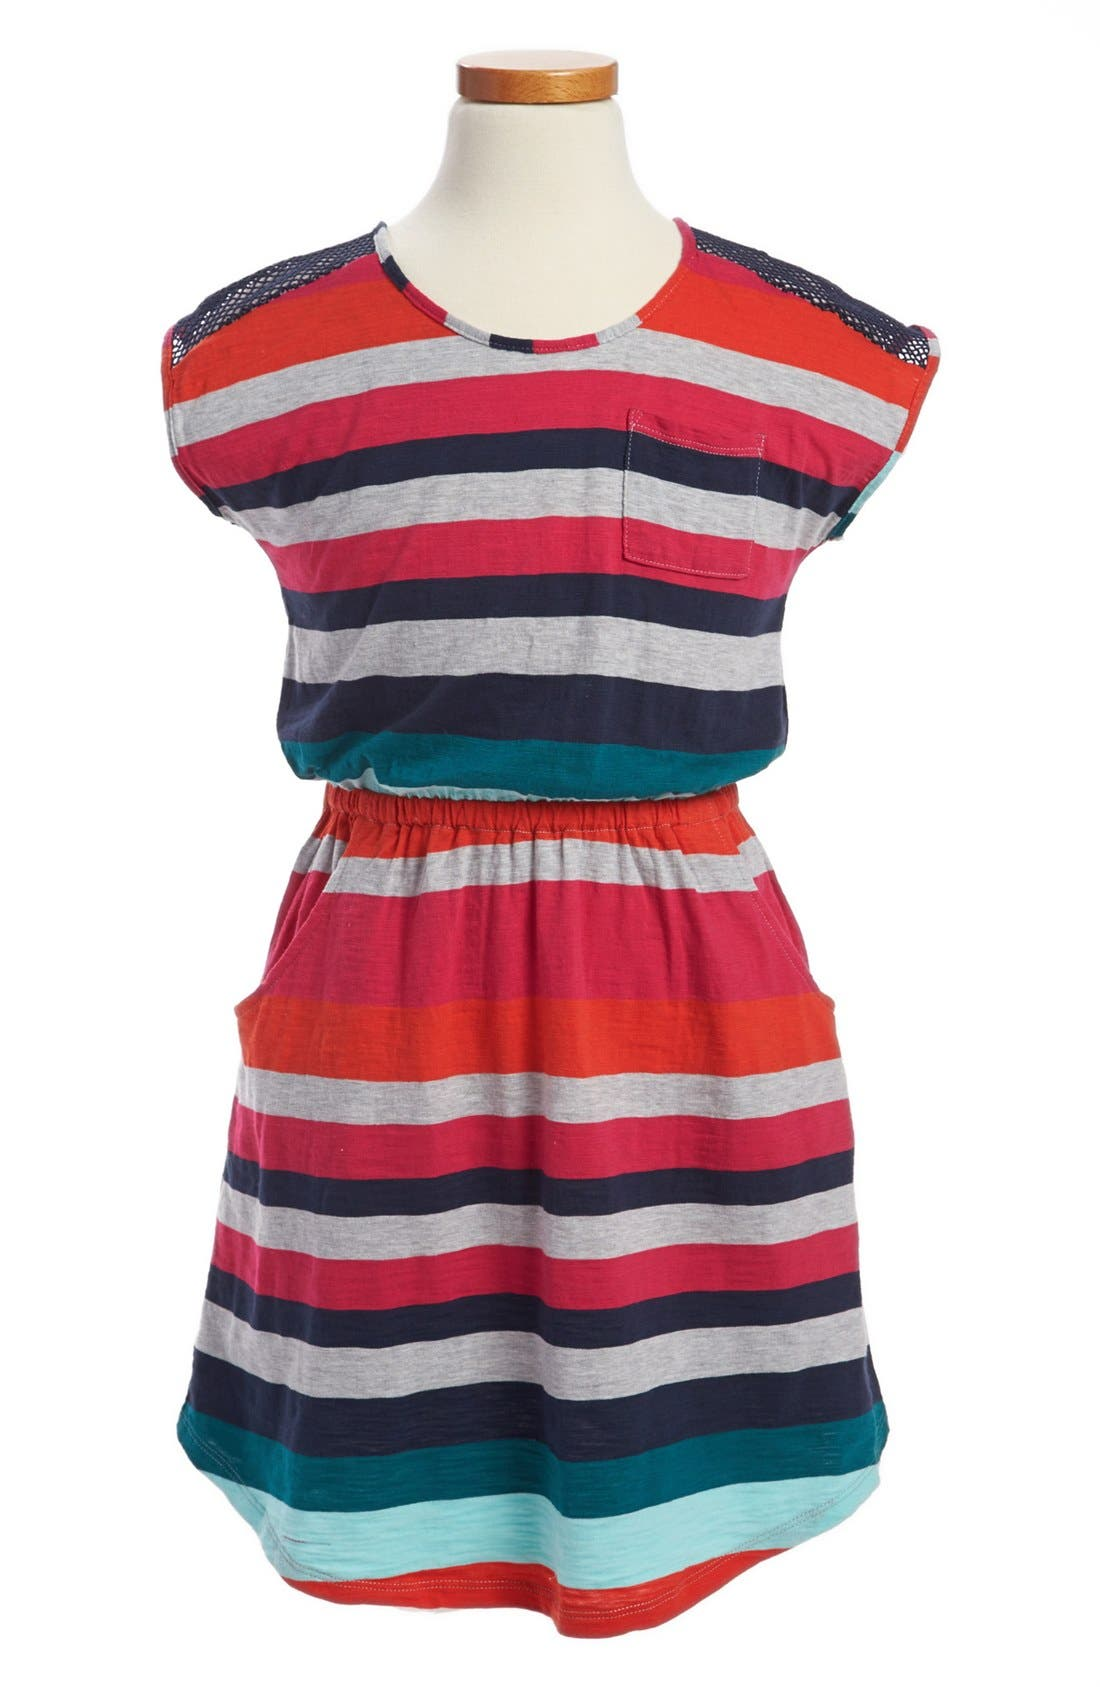 Alternate Image 1 Selected - Roxy 'First Glance' Knit Dress (Big Girls)